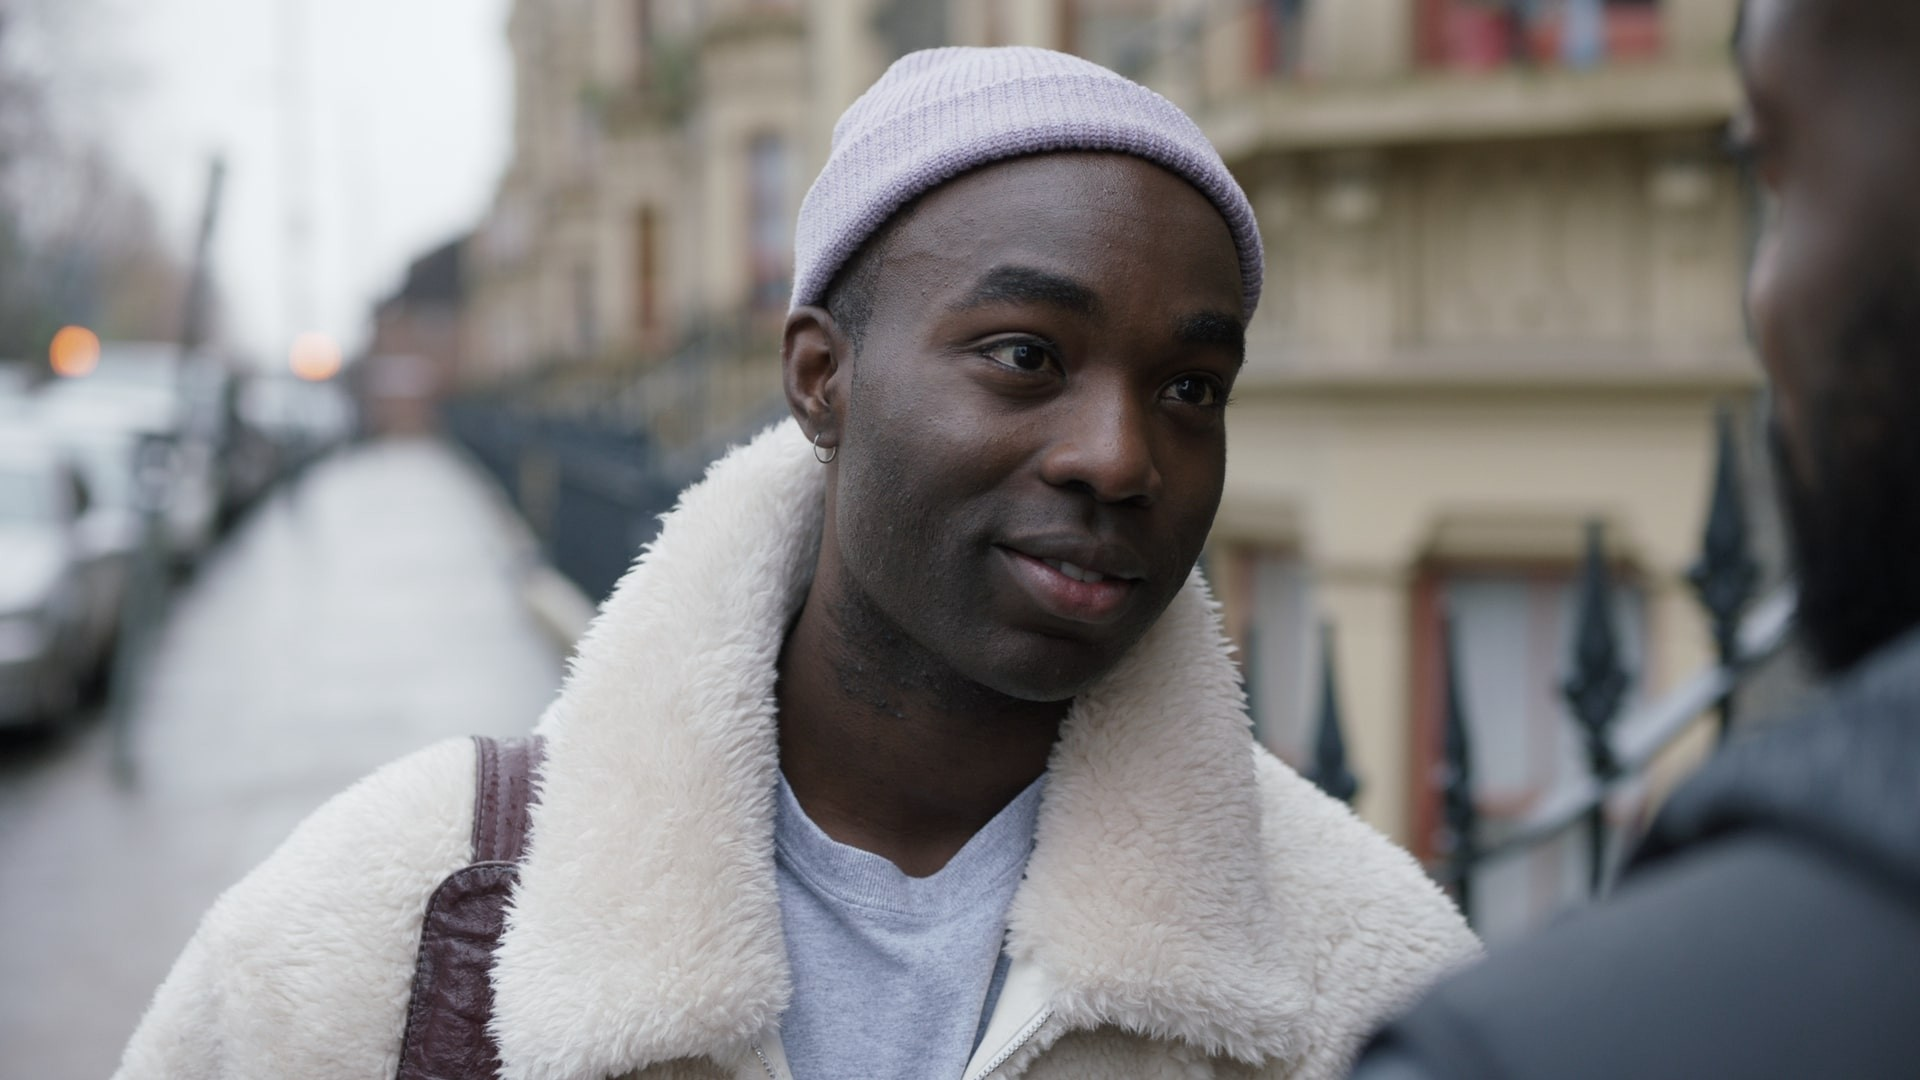 Kwame with furry coat and beanie.